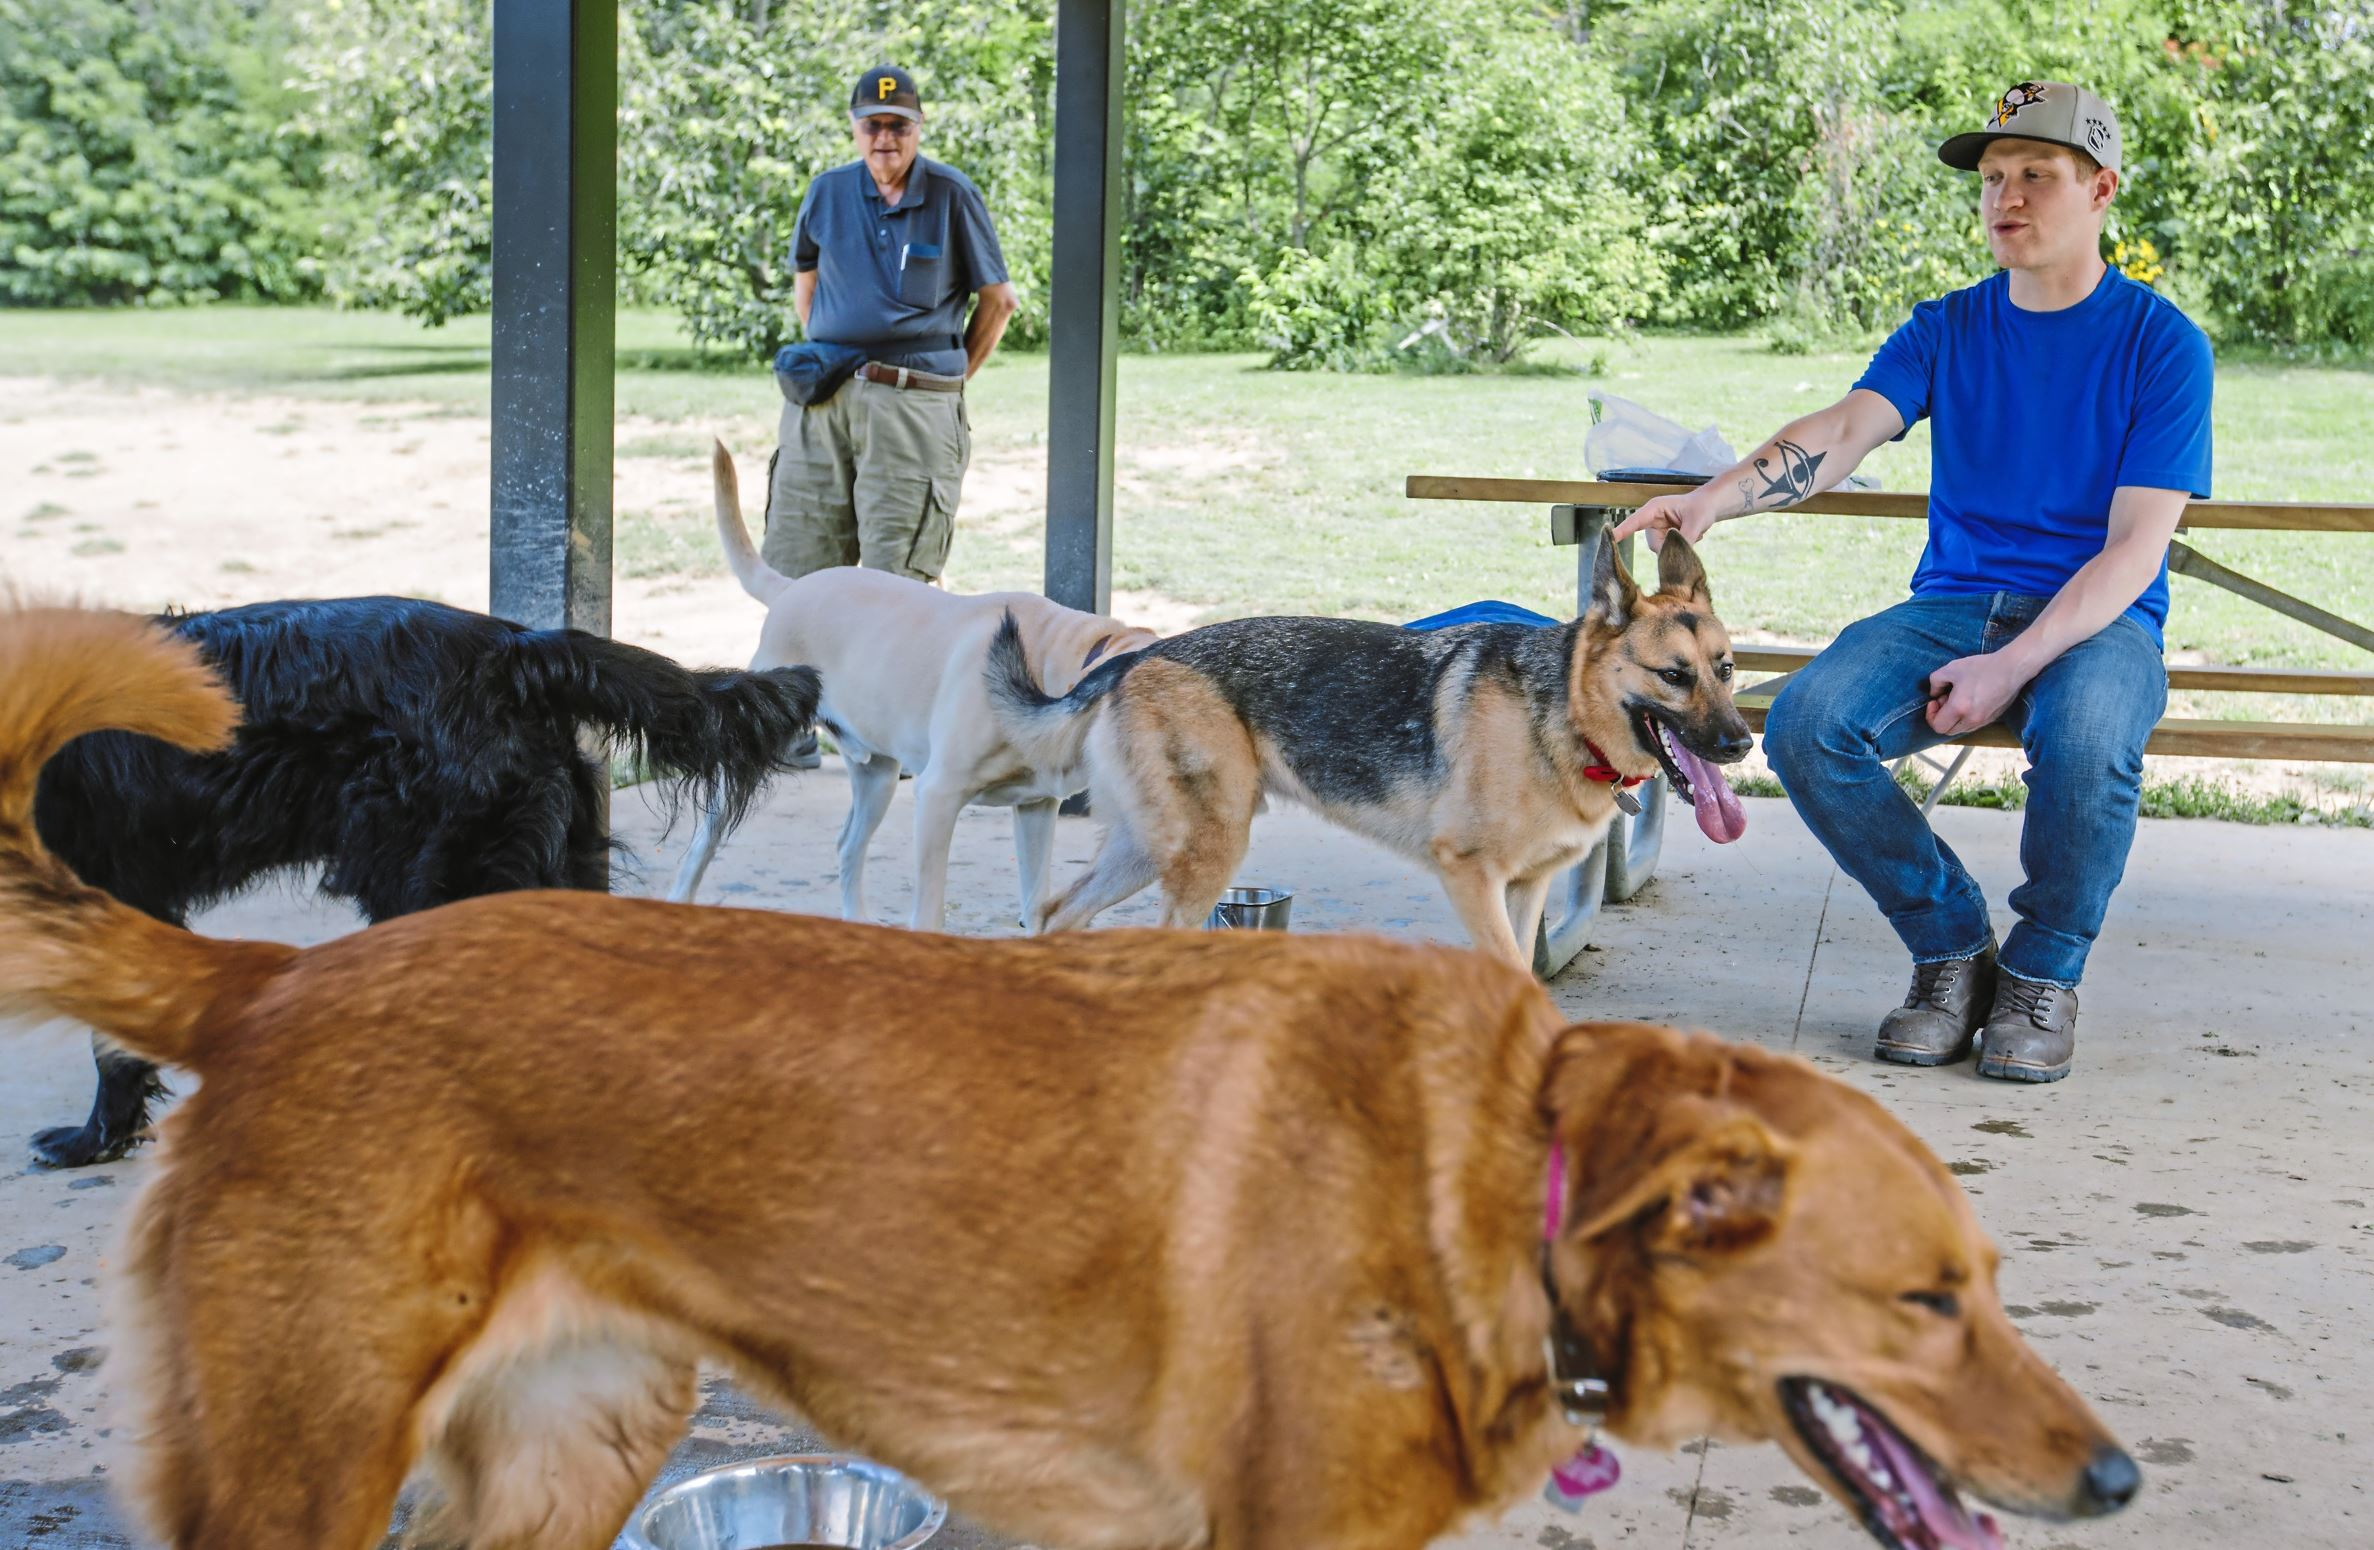 20170829arDogParks06-5 Rich Prokopovich, left, of Bethel Park and Shawn Wright of Castle Shannon watch their dogs play with other dogs in the pavilion at the South Park Dog Park.